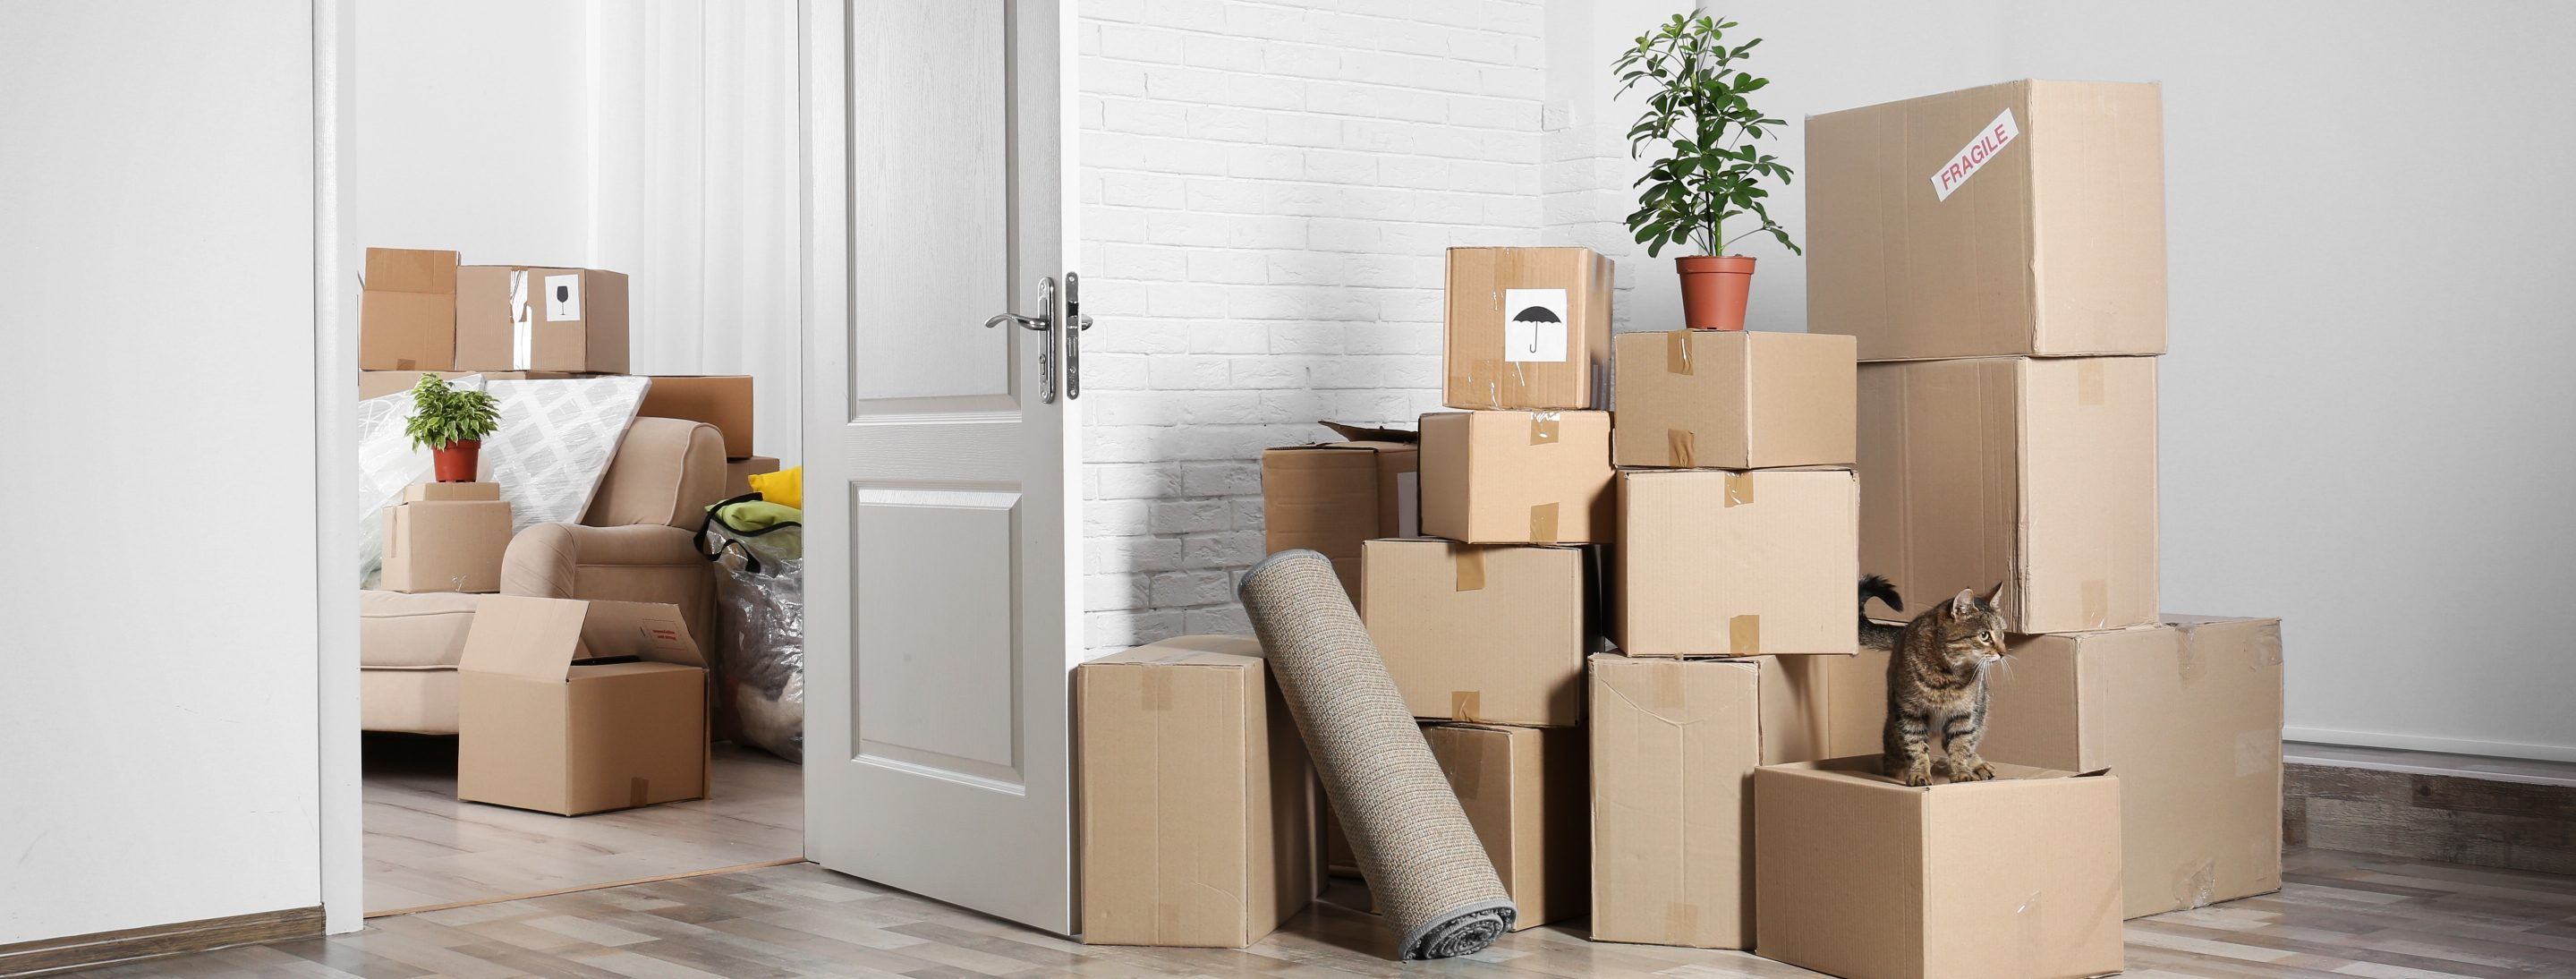 AB&C Moving and Delivery - Making your move easy!